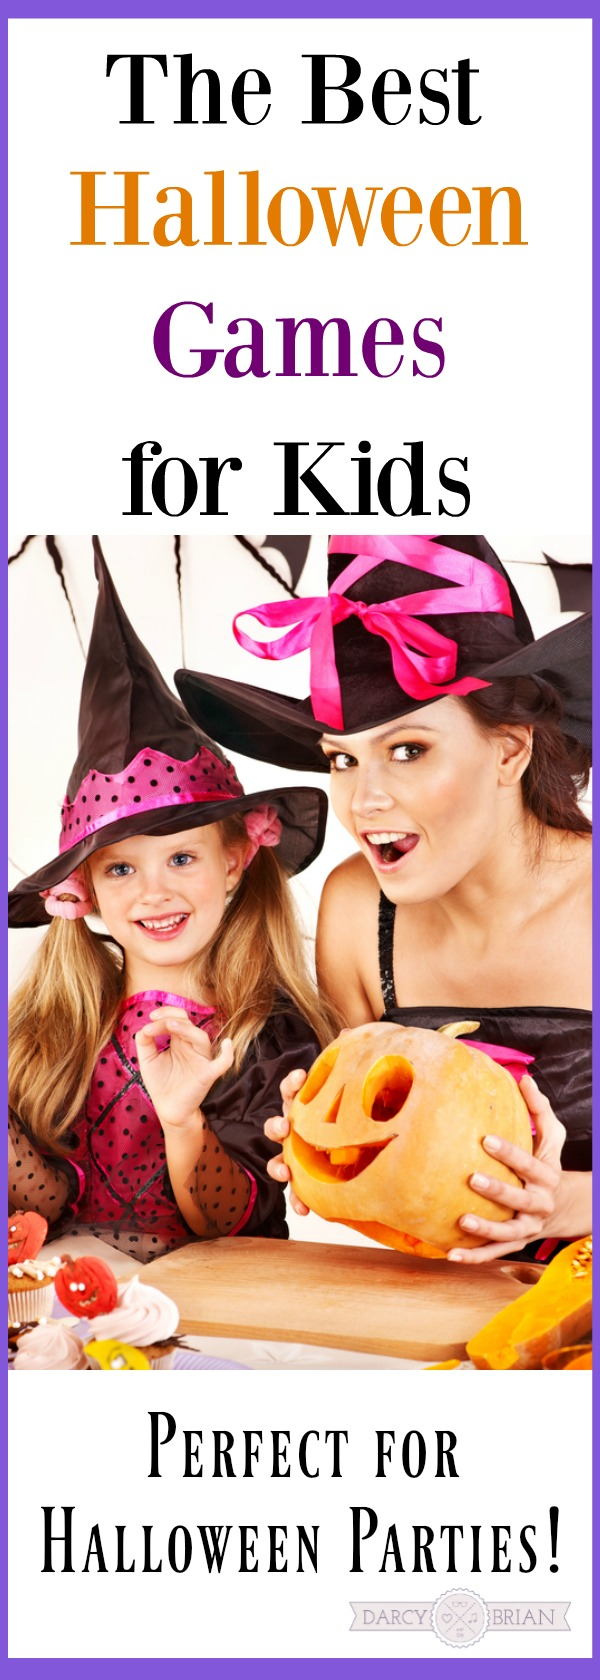 Love these ideas for kids activities! Planning a Halloween party for kids? Check out the BEST Halloween Games for Kids! This list has some easy to create games that are budget-friendly and tons of fun for Halloween parties!